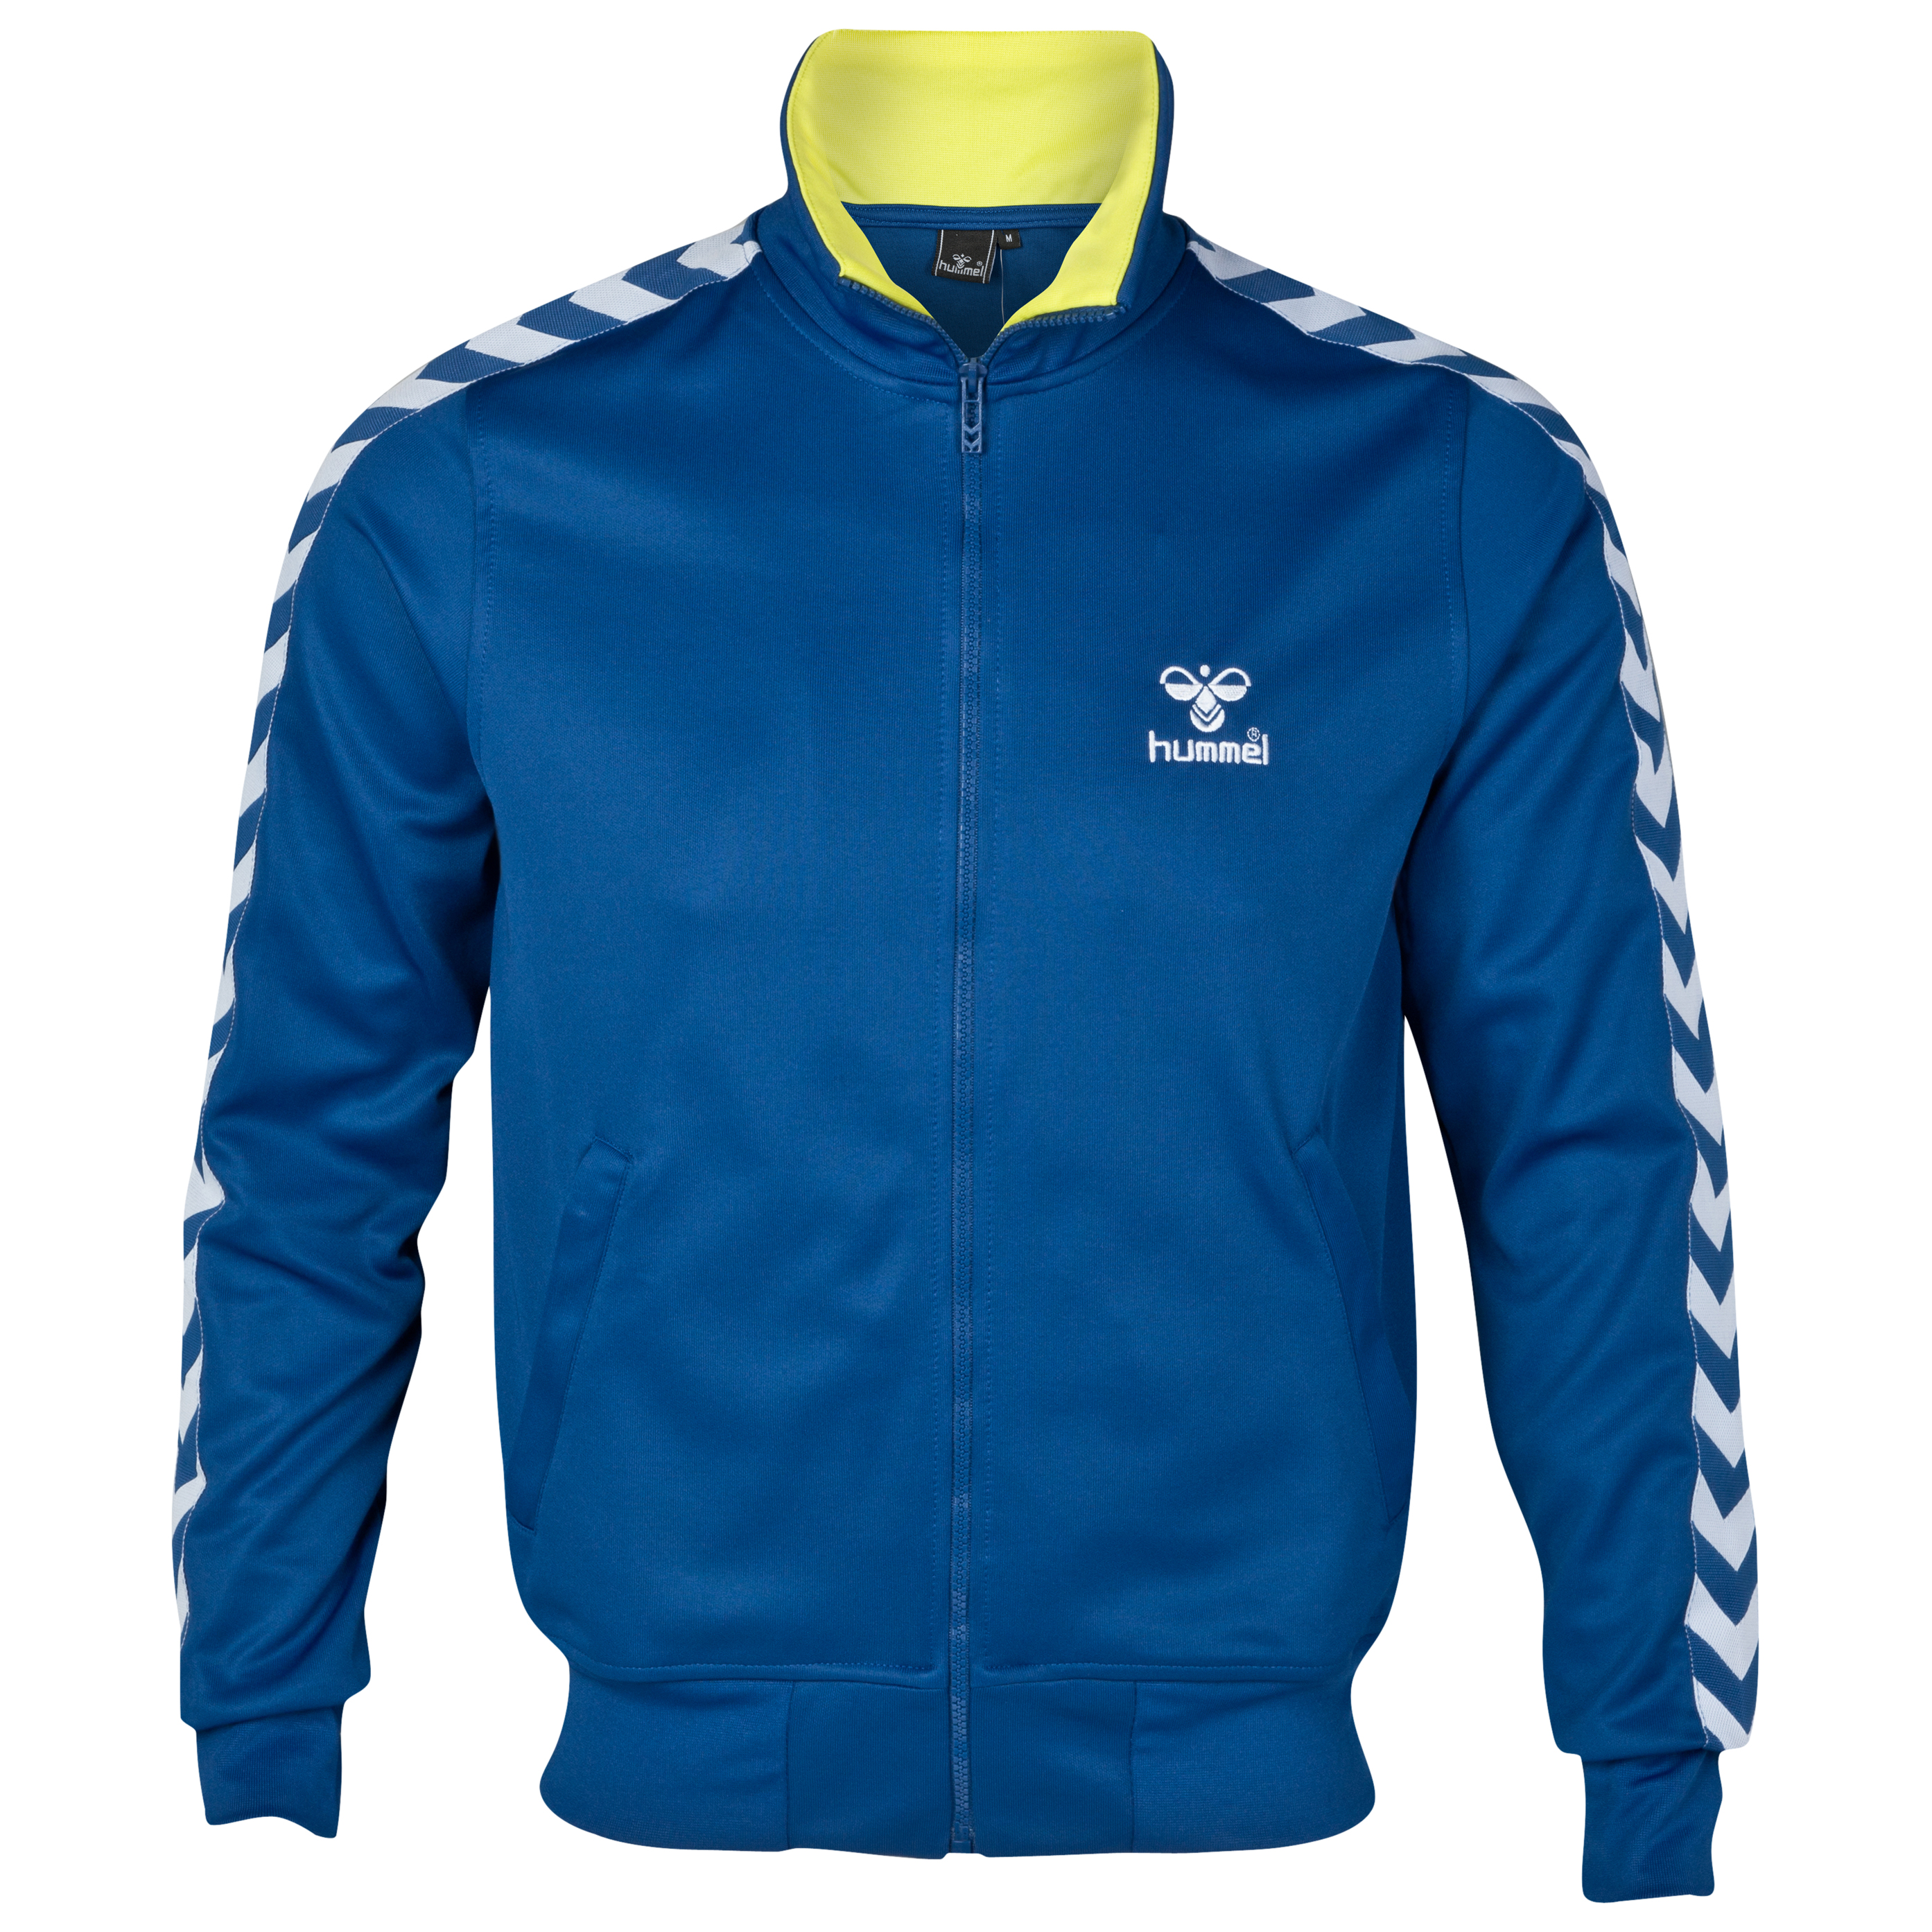 Hummel Atlantic Zip Track Jacket - Limoges